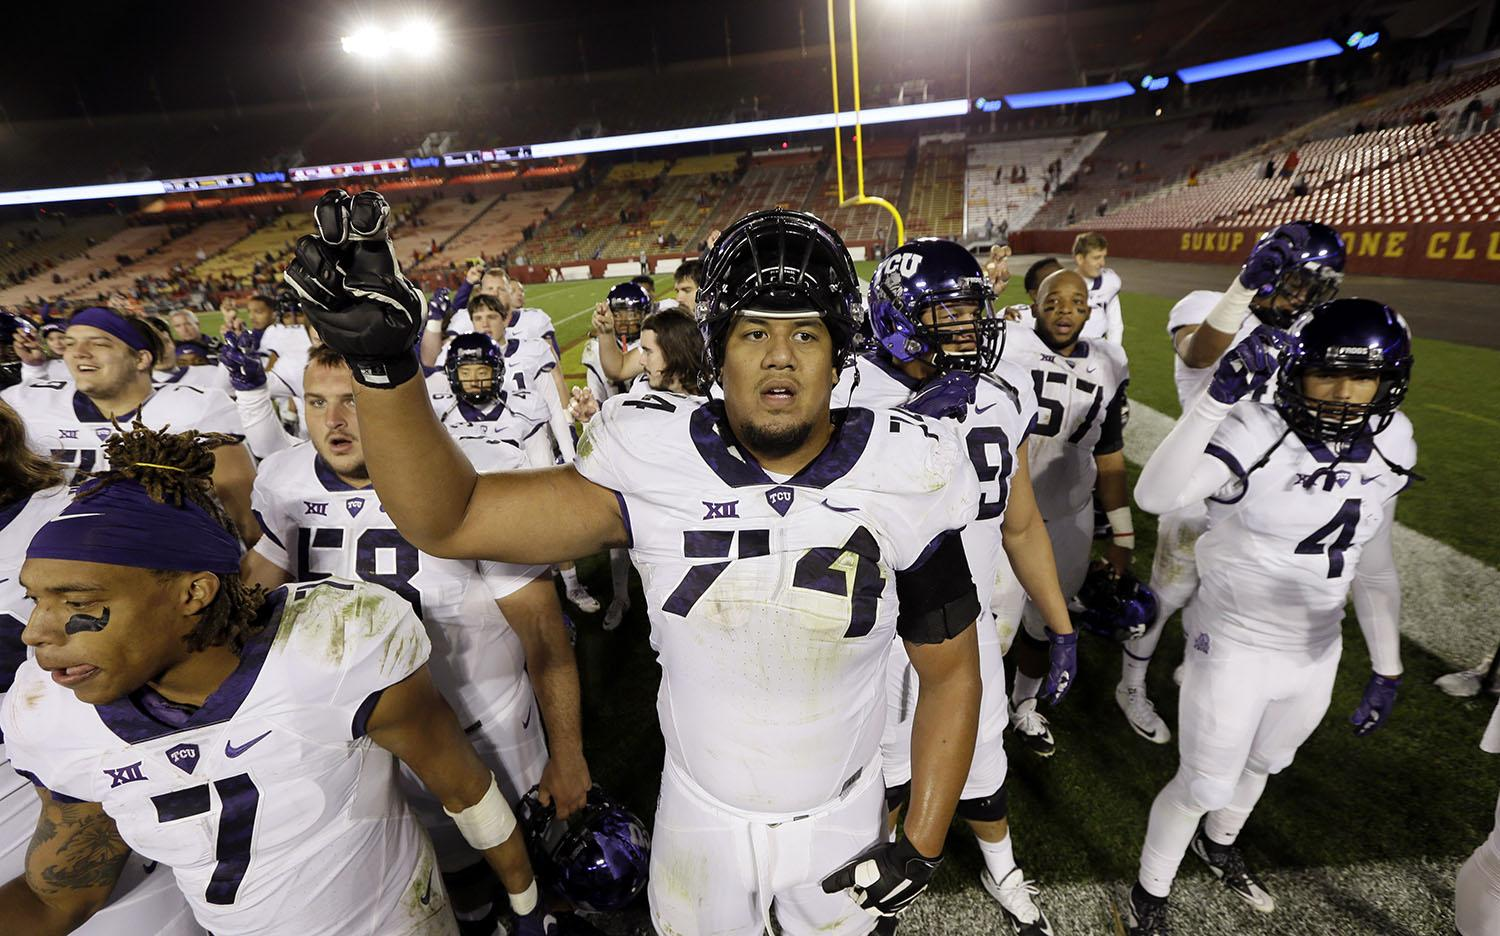 TCU offensive tackle Halapoulivaati Vaitai, center, celebrates with teammates after their 45-21 victory over Iowa State in an NCAA college football game, Saturday, Oct. 17, 2015, in Ames, Iowa. (AP Photo/Charlie Neibergall)